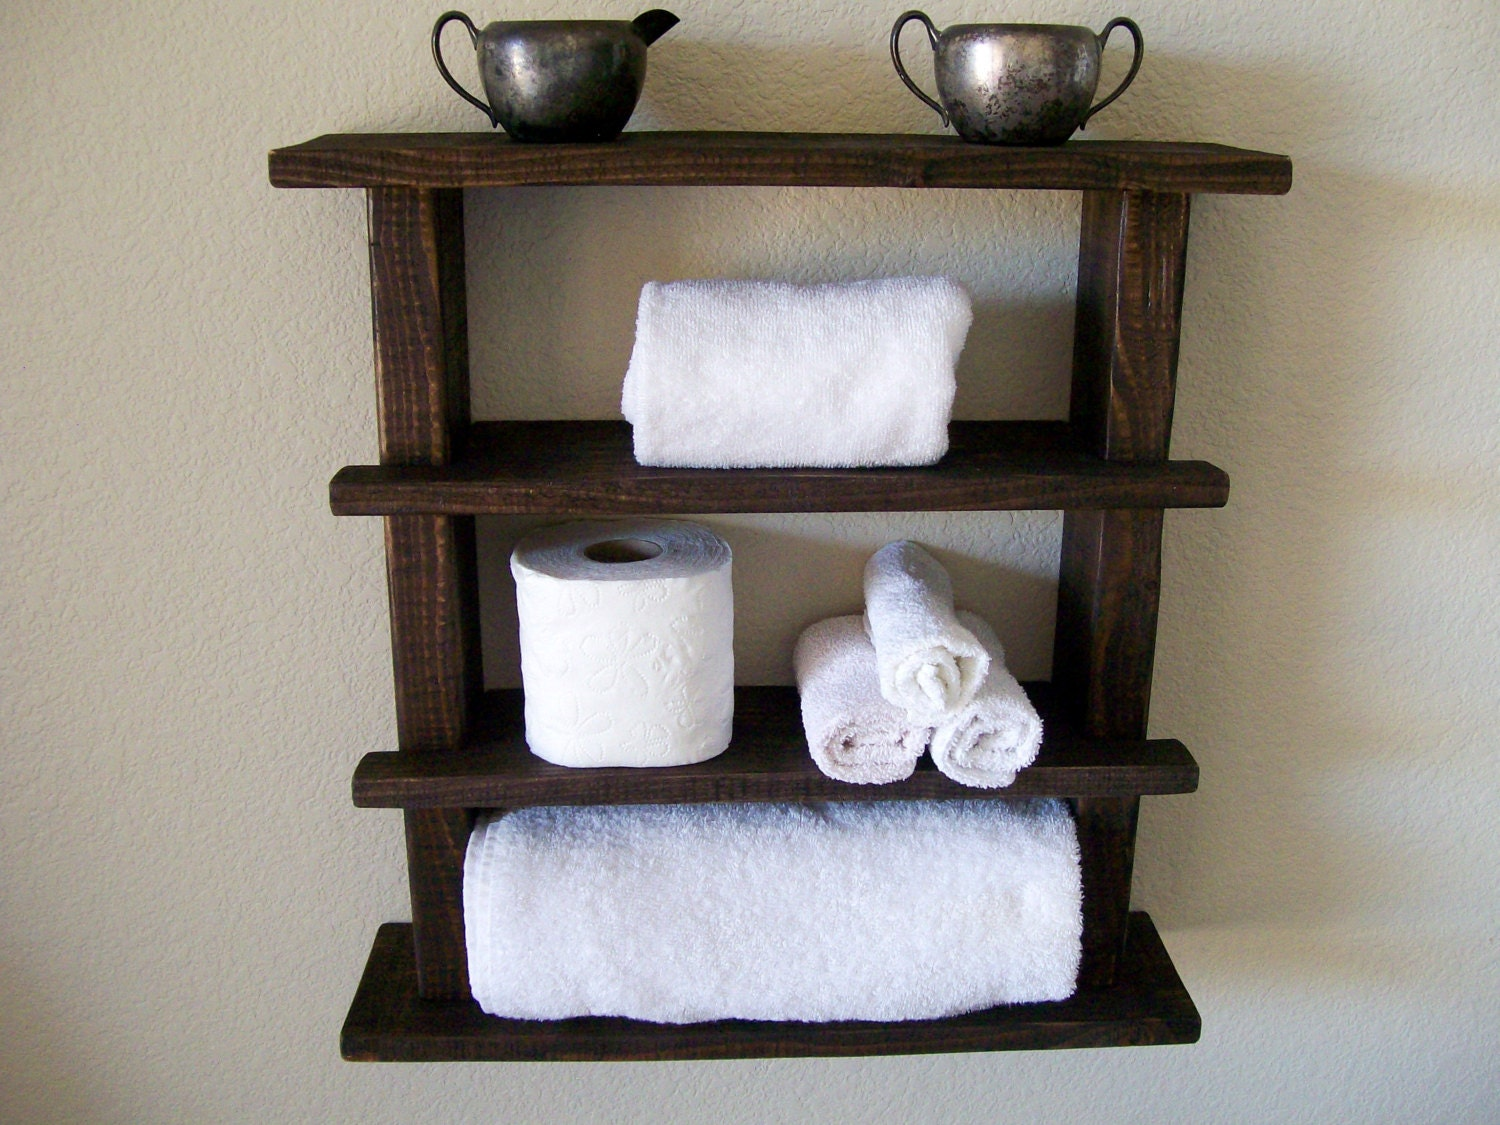 Rustic Bathroom Shelves Towel Rack Wood Shelf Bathroom